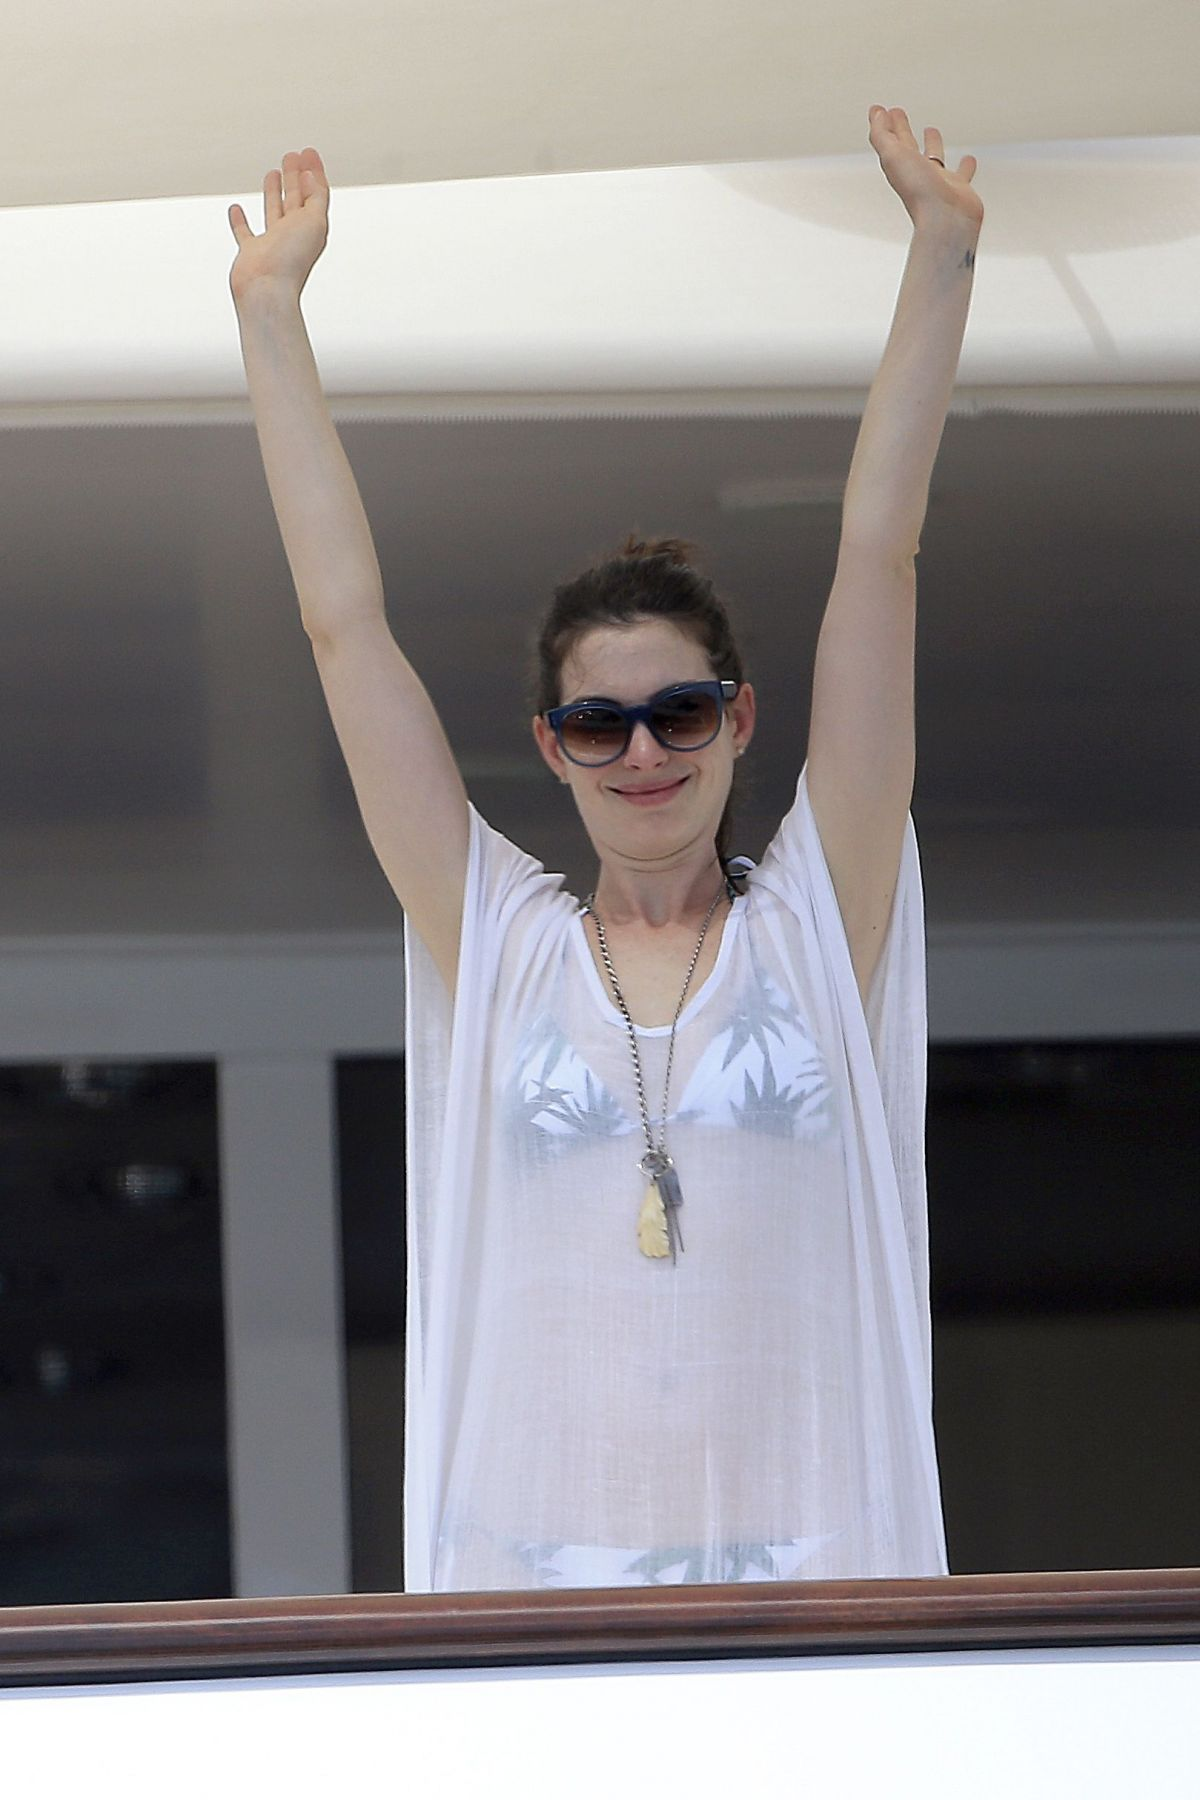 ANNE HATHAWAY at a Yacht in Spain 08/12/2015